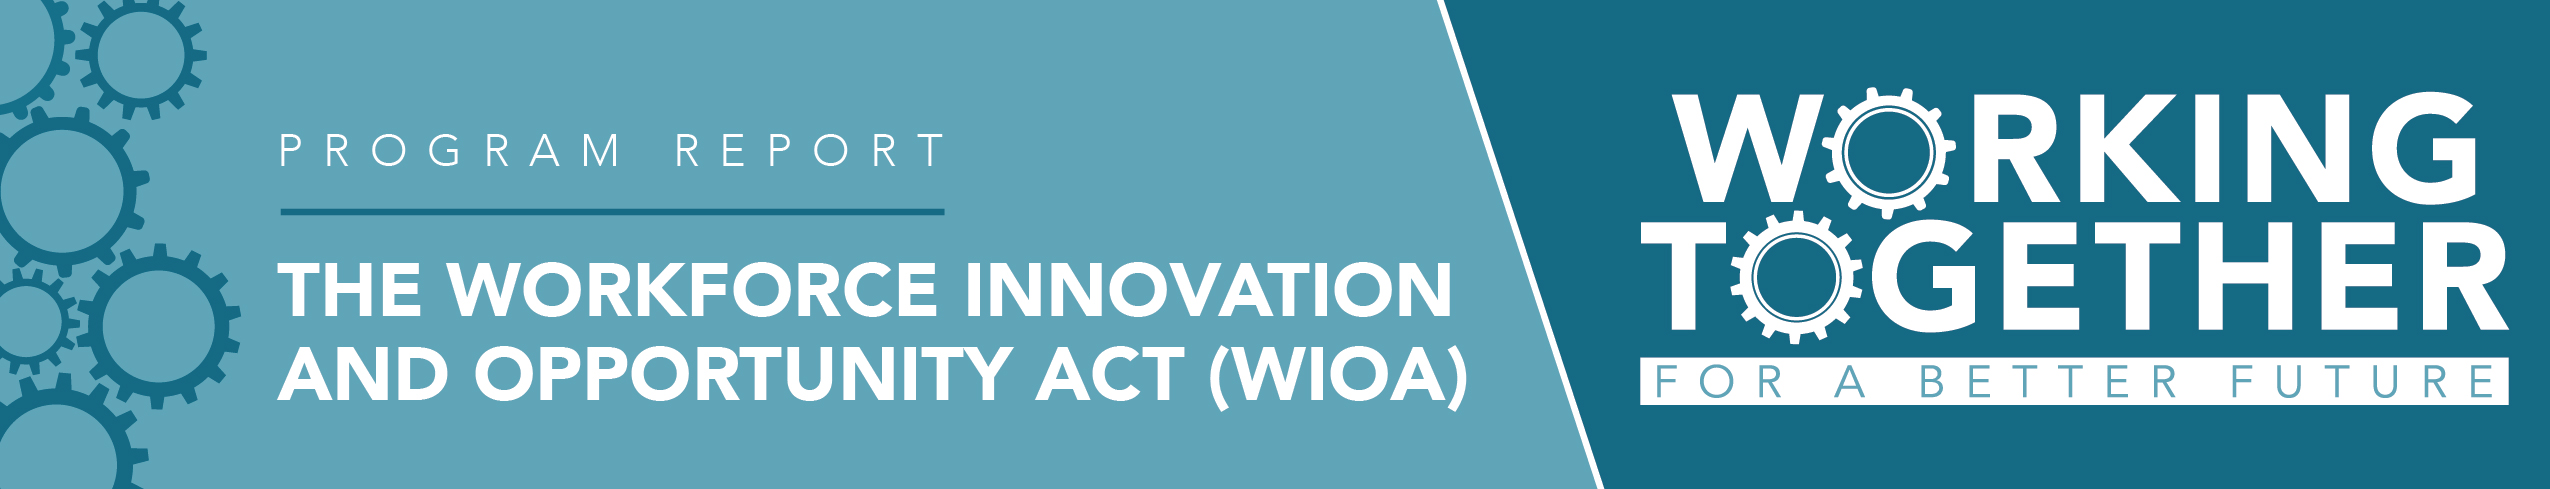 The Workforce Innovation & Opportunity Act (WIOA)